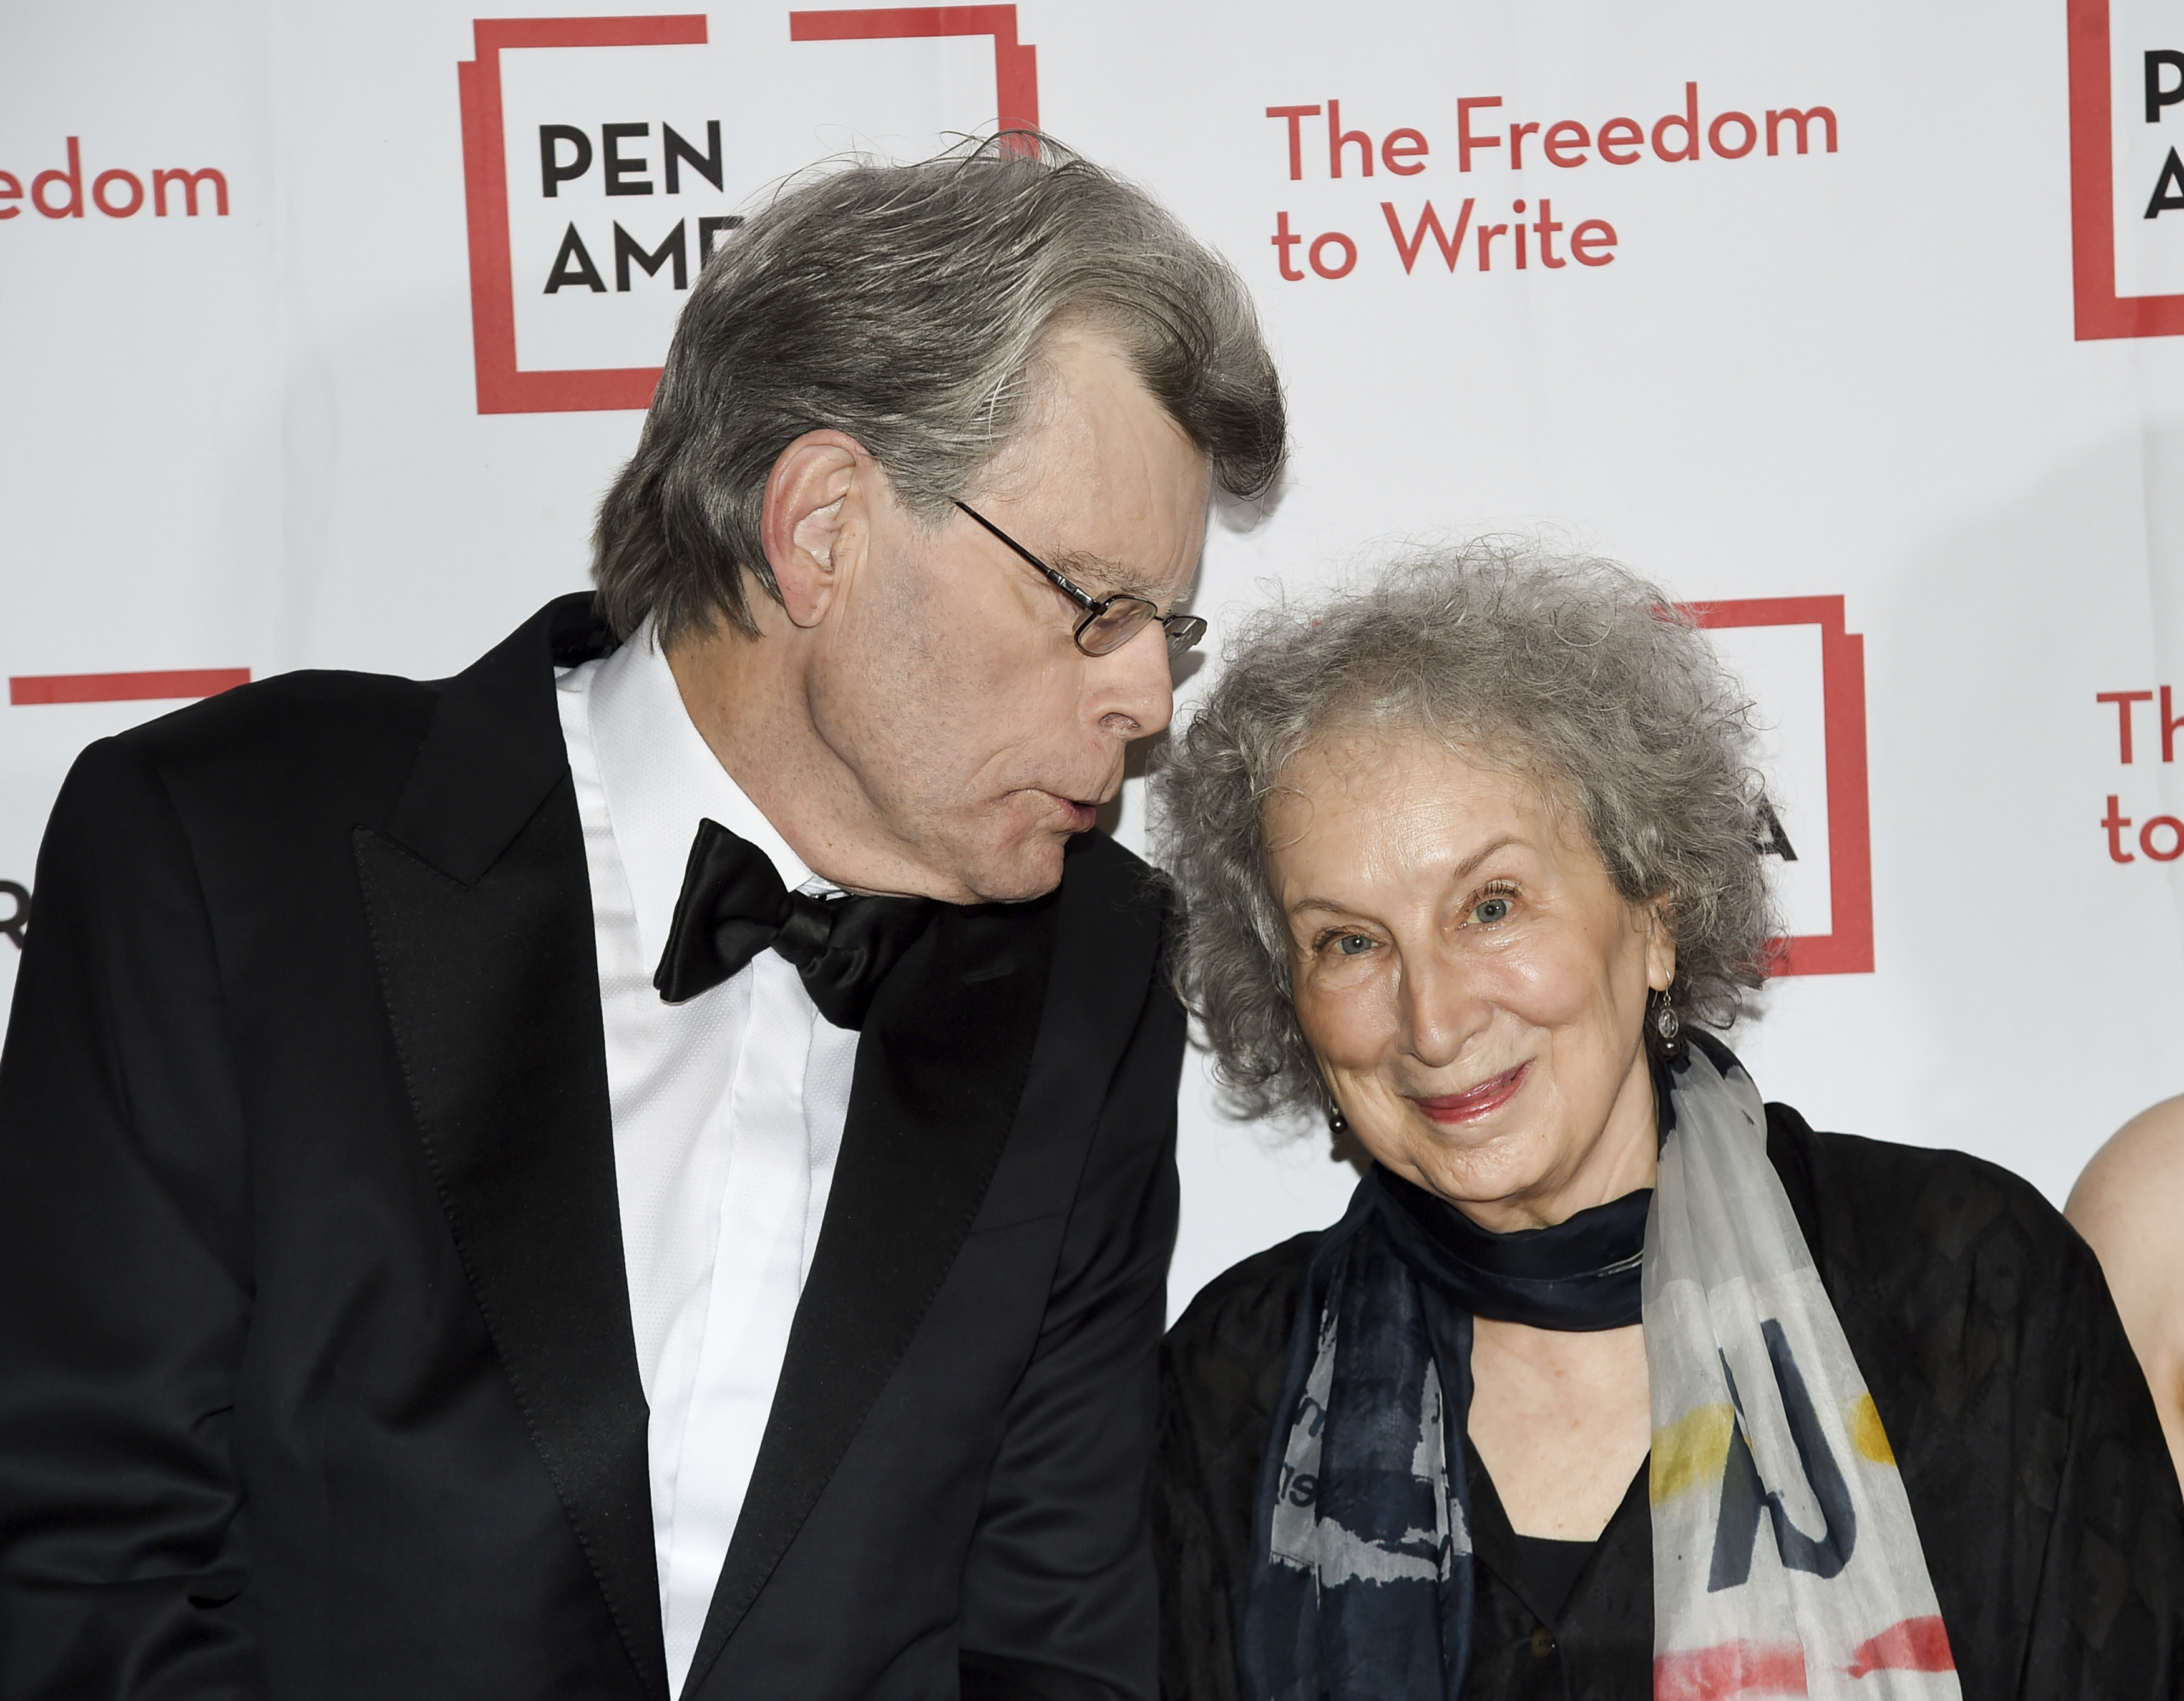 PEN literary service award recipient Stephen King, left, and author Margaret Atwood attend the 2018 PEN Literary Gala at the American Museum of Natural History on Tuesday, May 22, 2018, in New York. (Photo by Evan Agostini/Invision/AP)